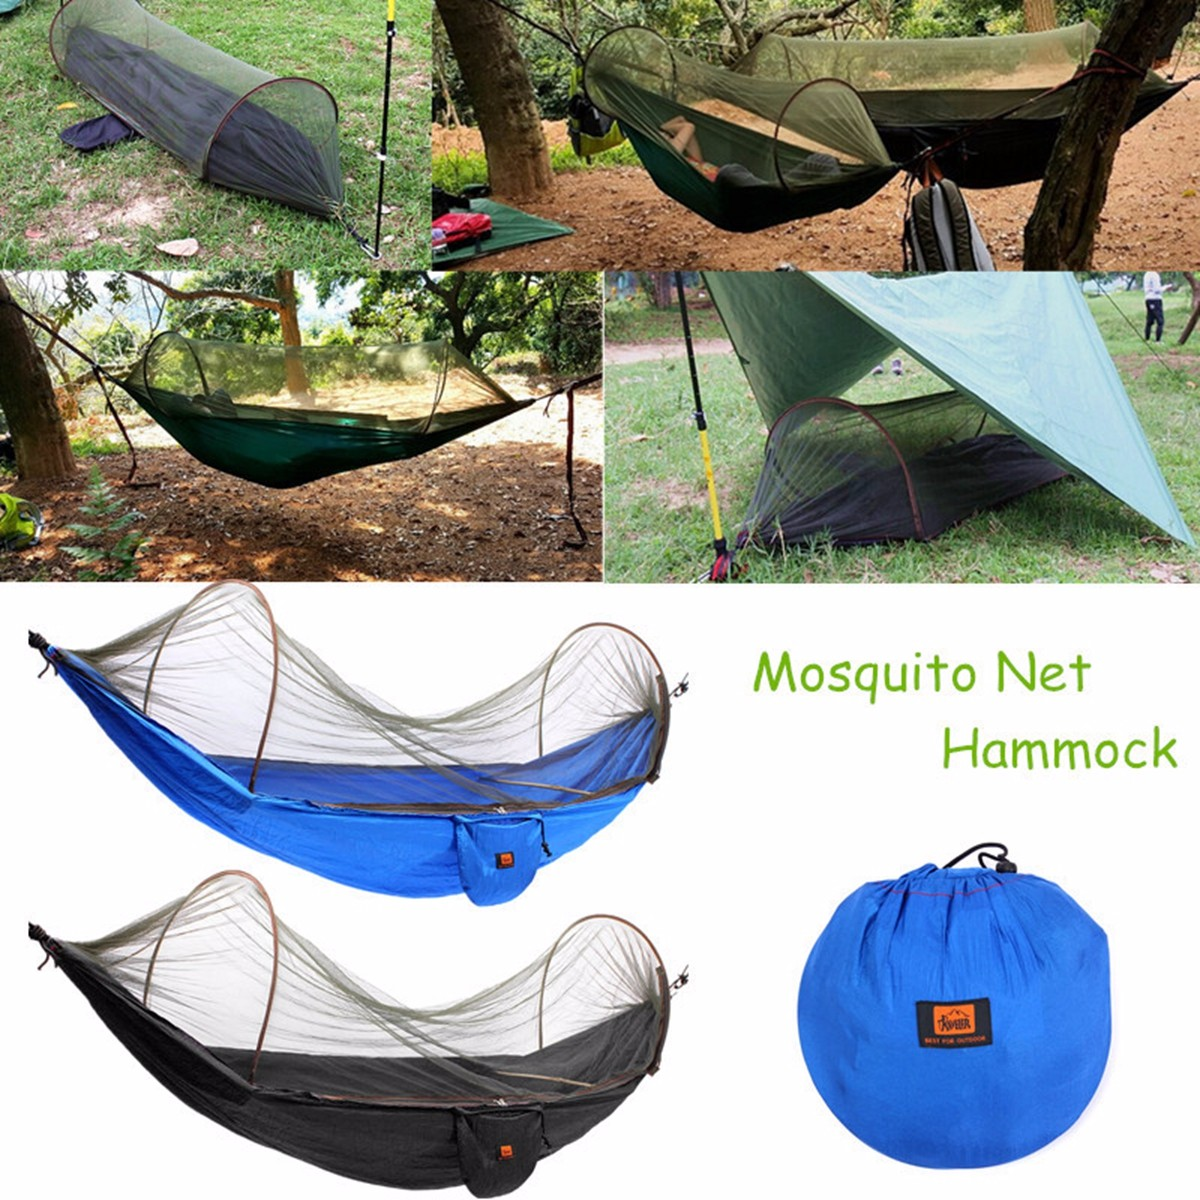 Parachute Hammock Portable Outdoor Camping Sleeping Hanging Bed With Mosquito Net